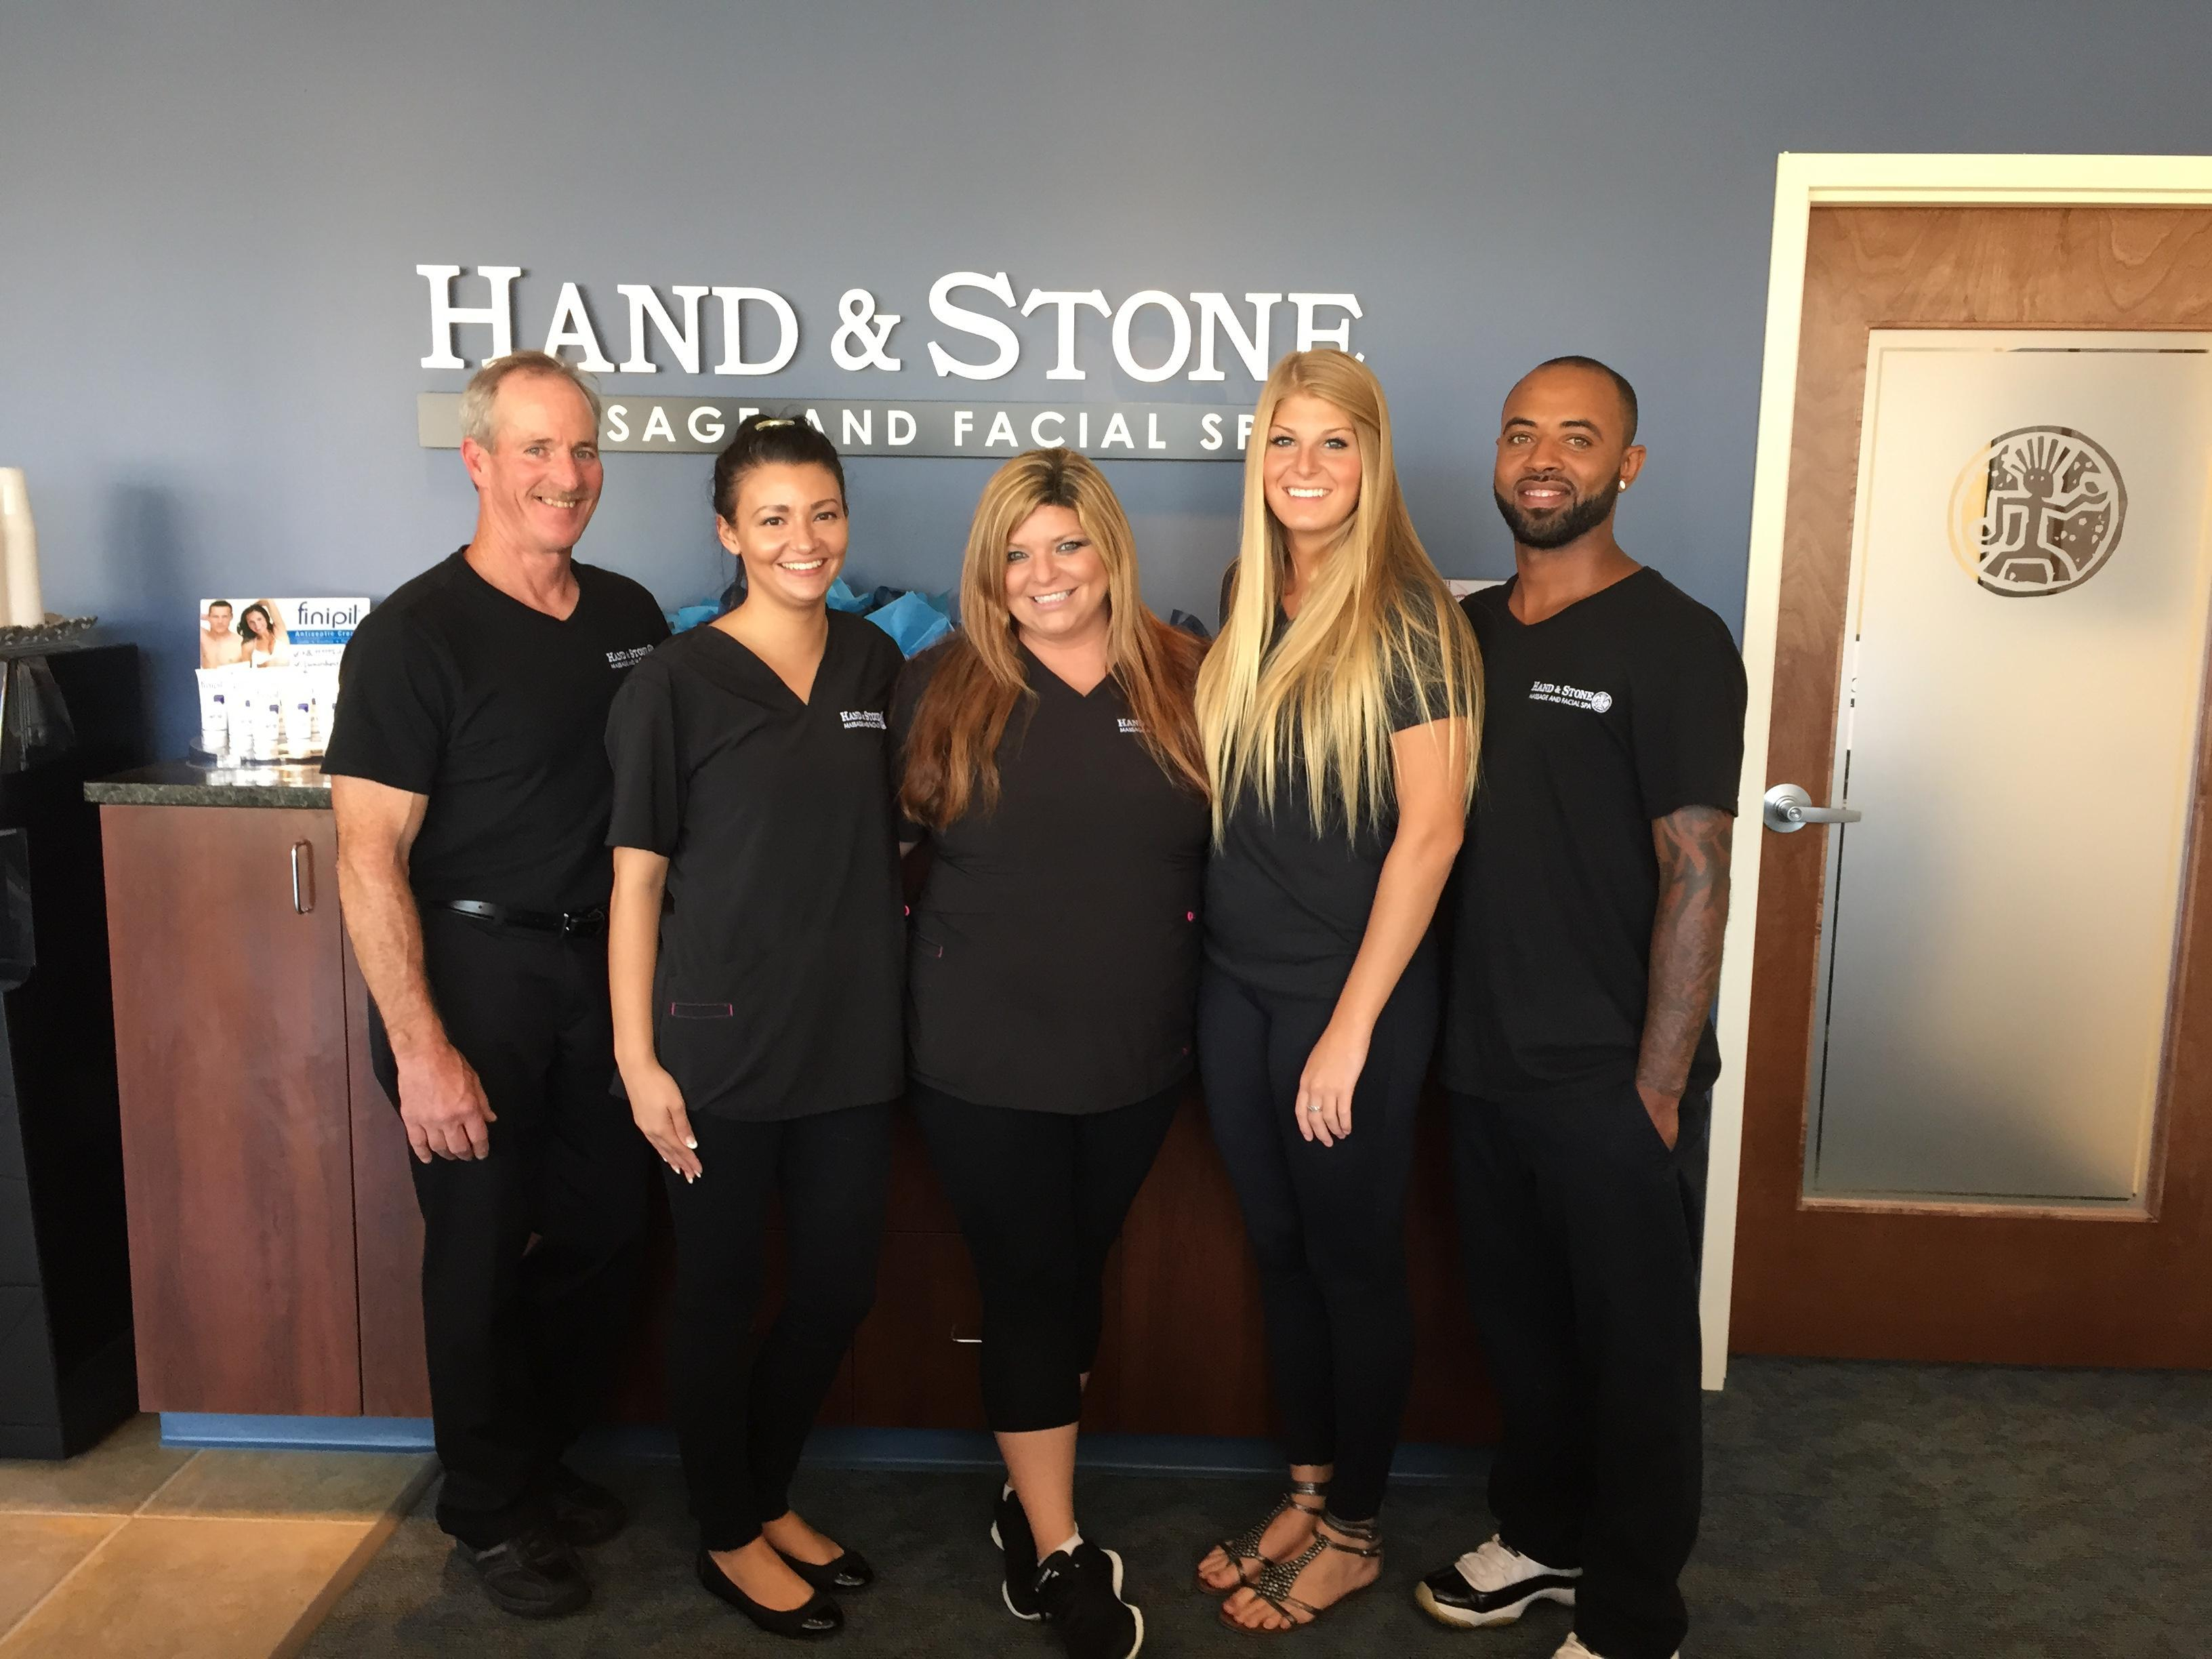 Your Friendly Hand & Stone Team